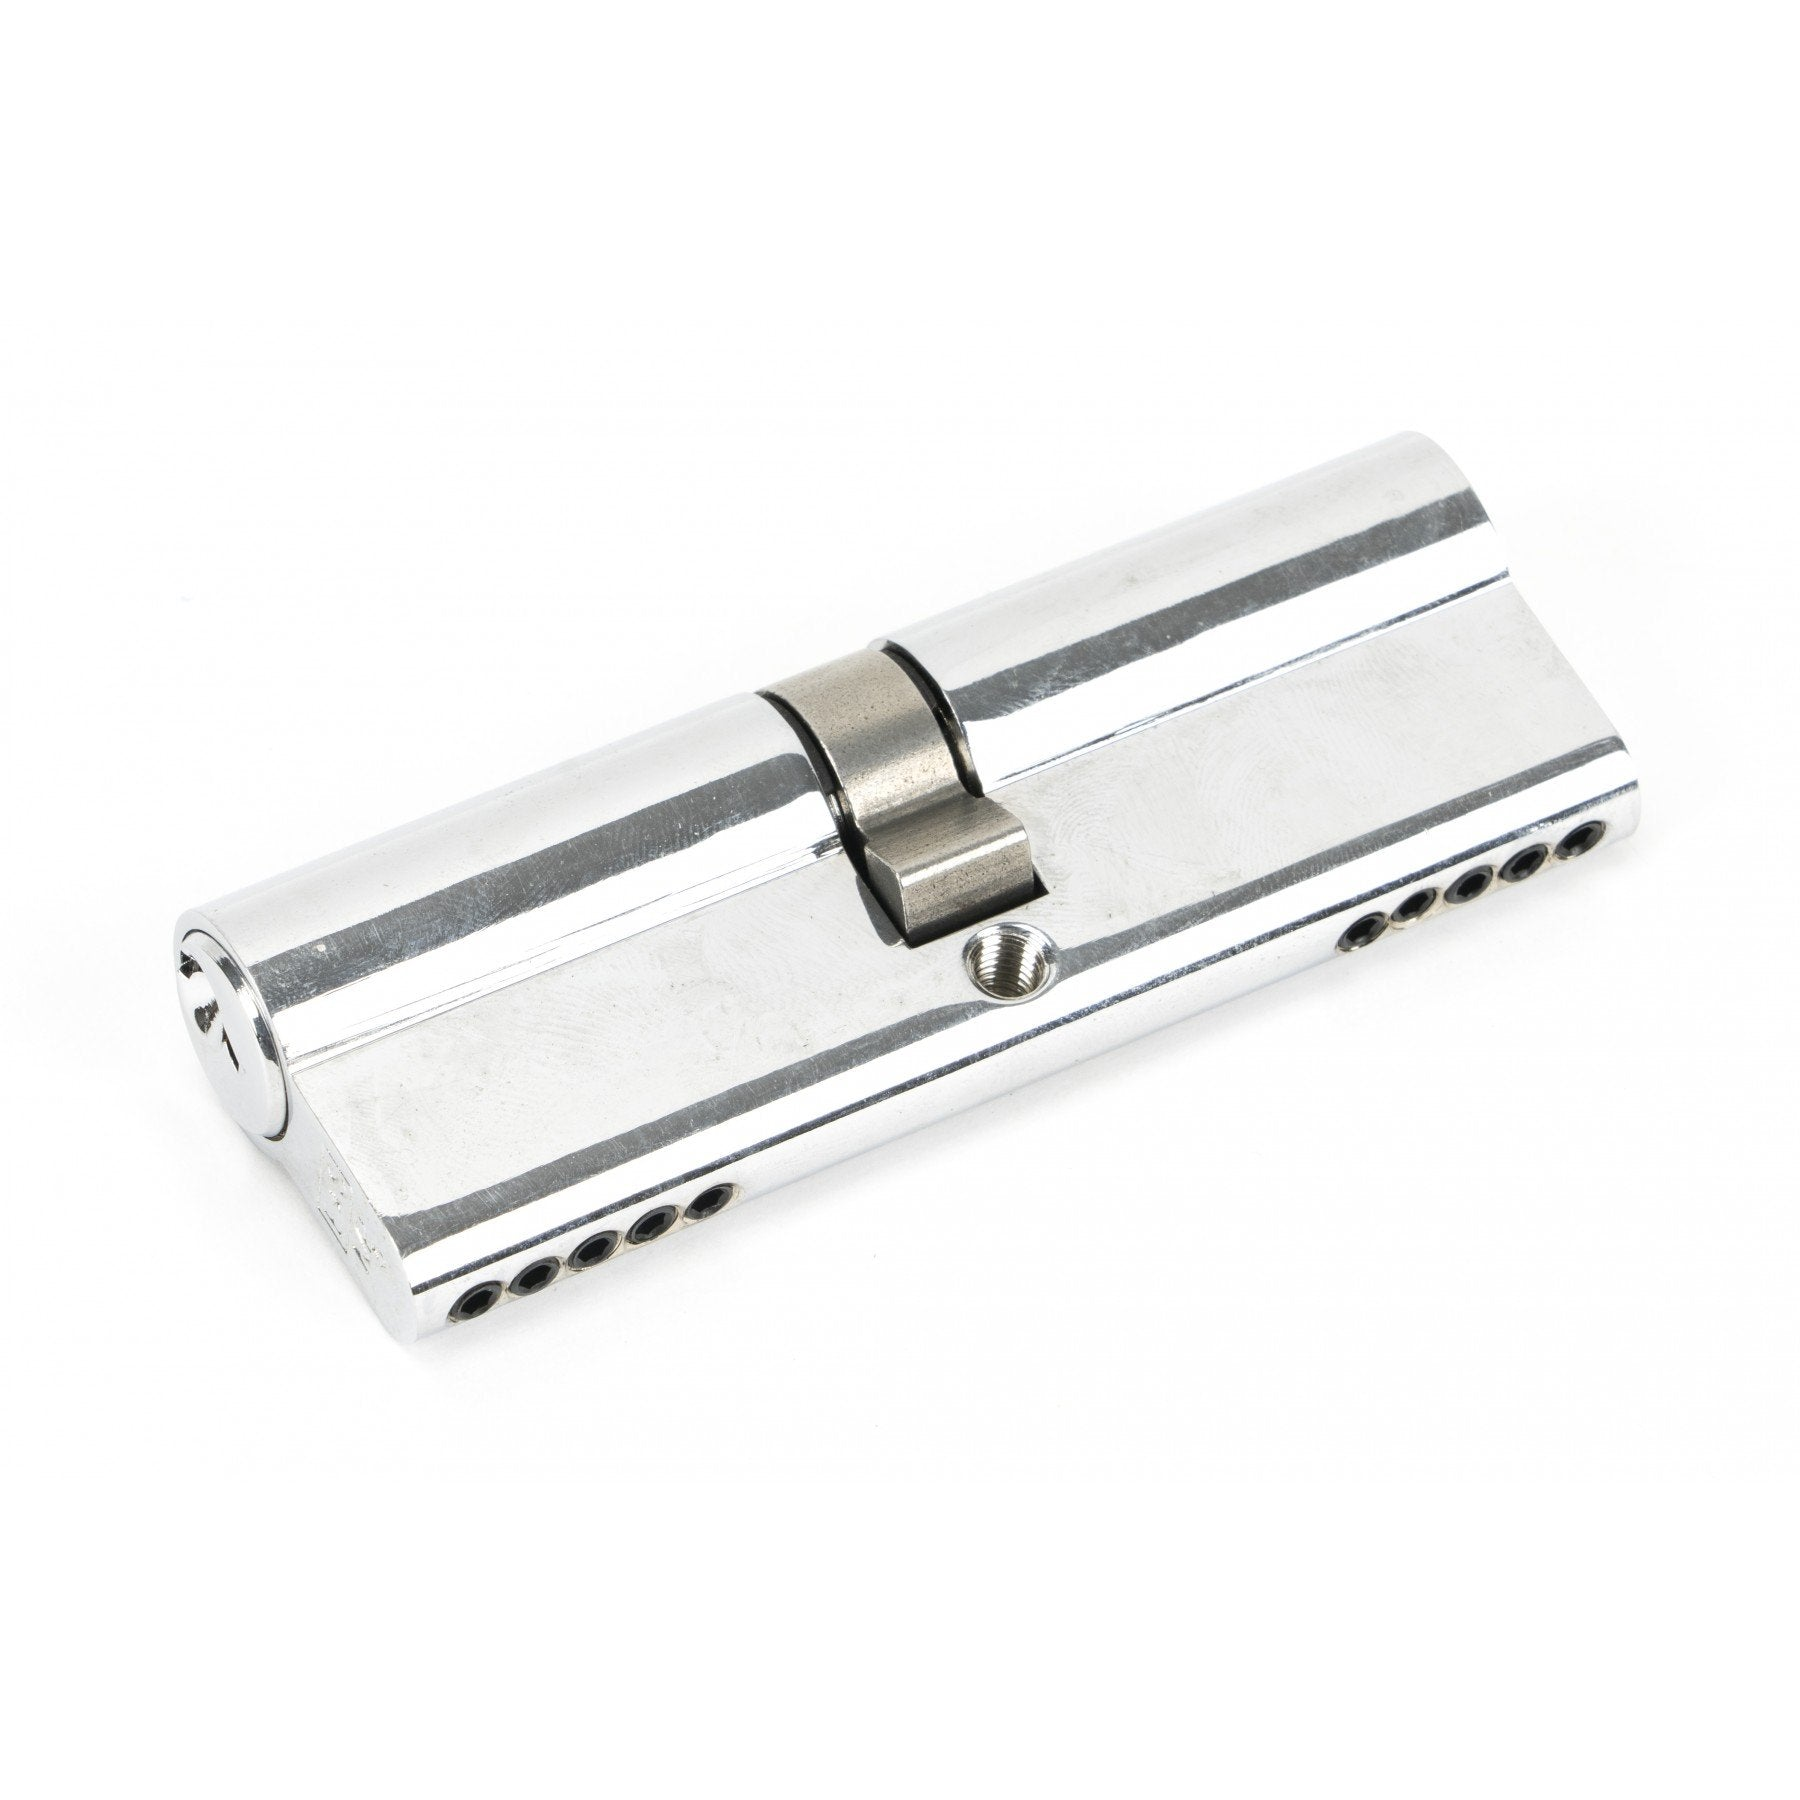 Polished Chrome 45/45 5pin Euro Cylinder - No.42 Interiors